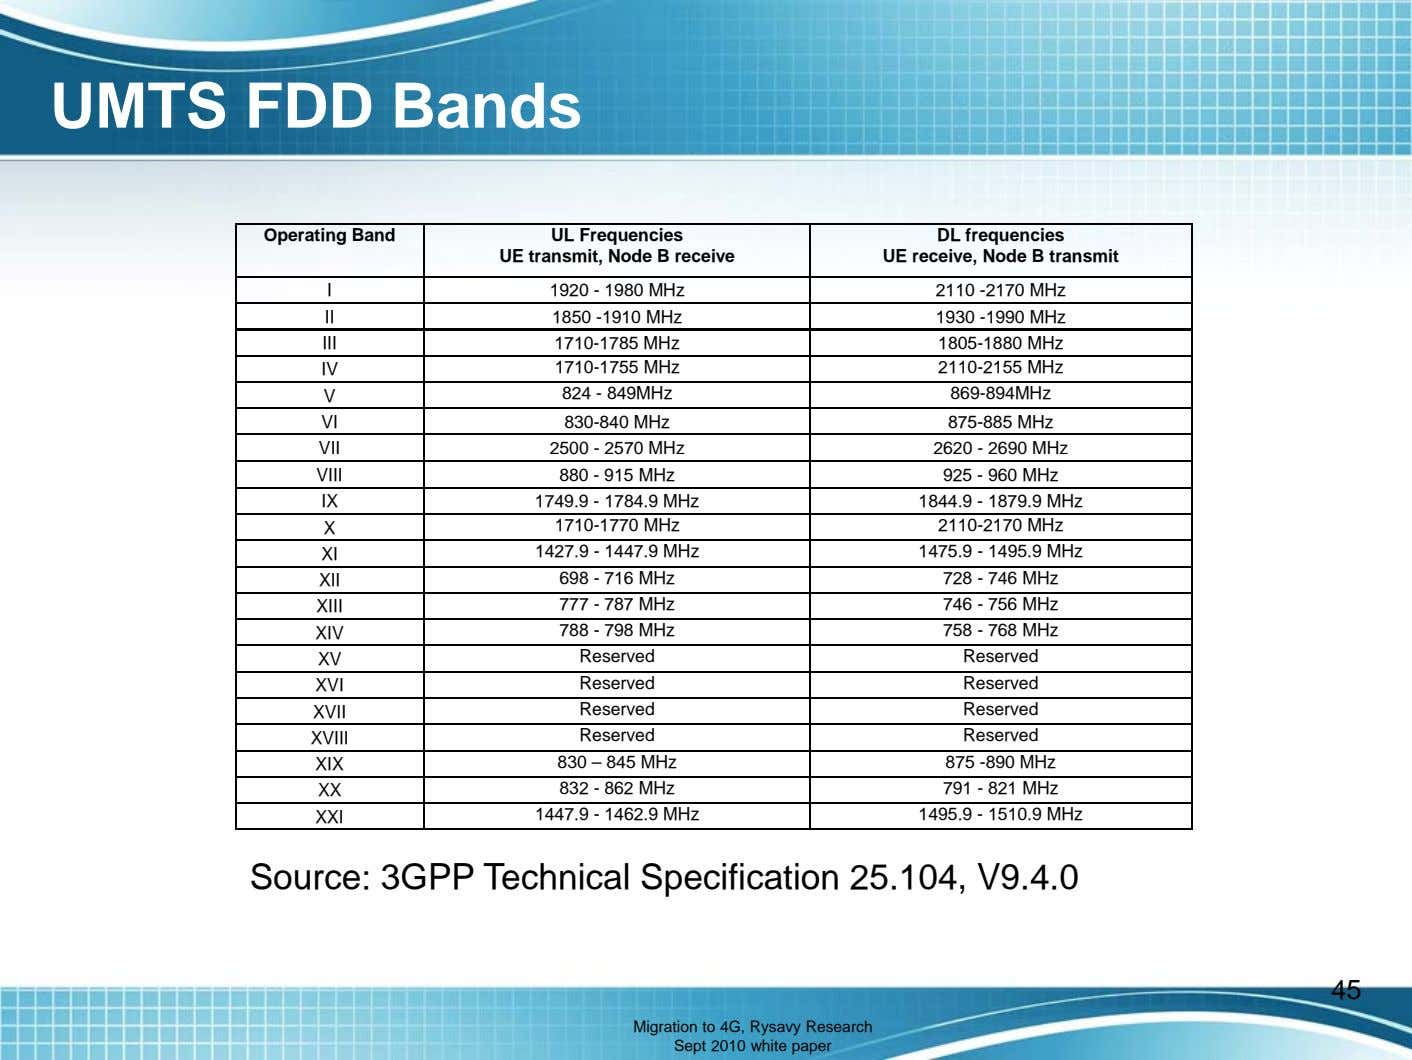 UMTS FDD Bands Operating Band UL Frequencies UE transmit, Node B receive DL frequencies UE